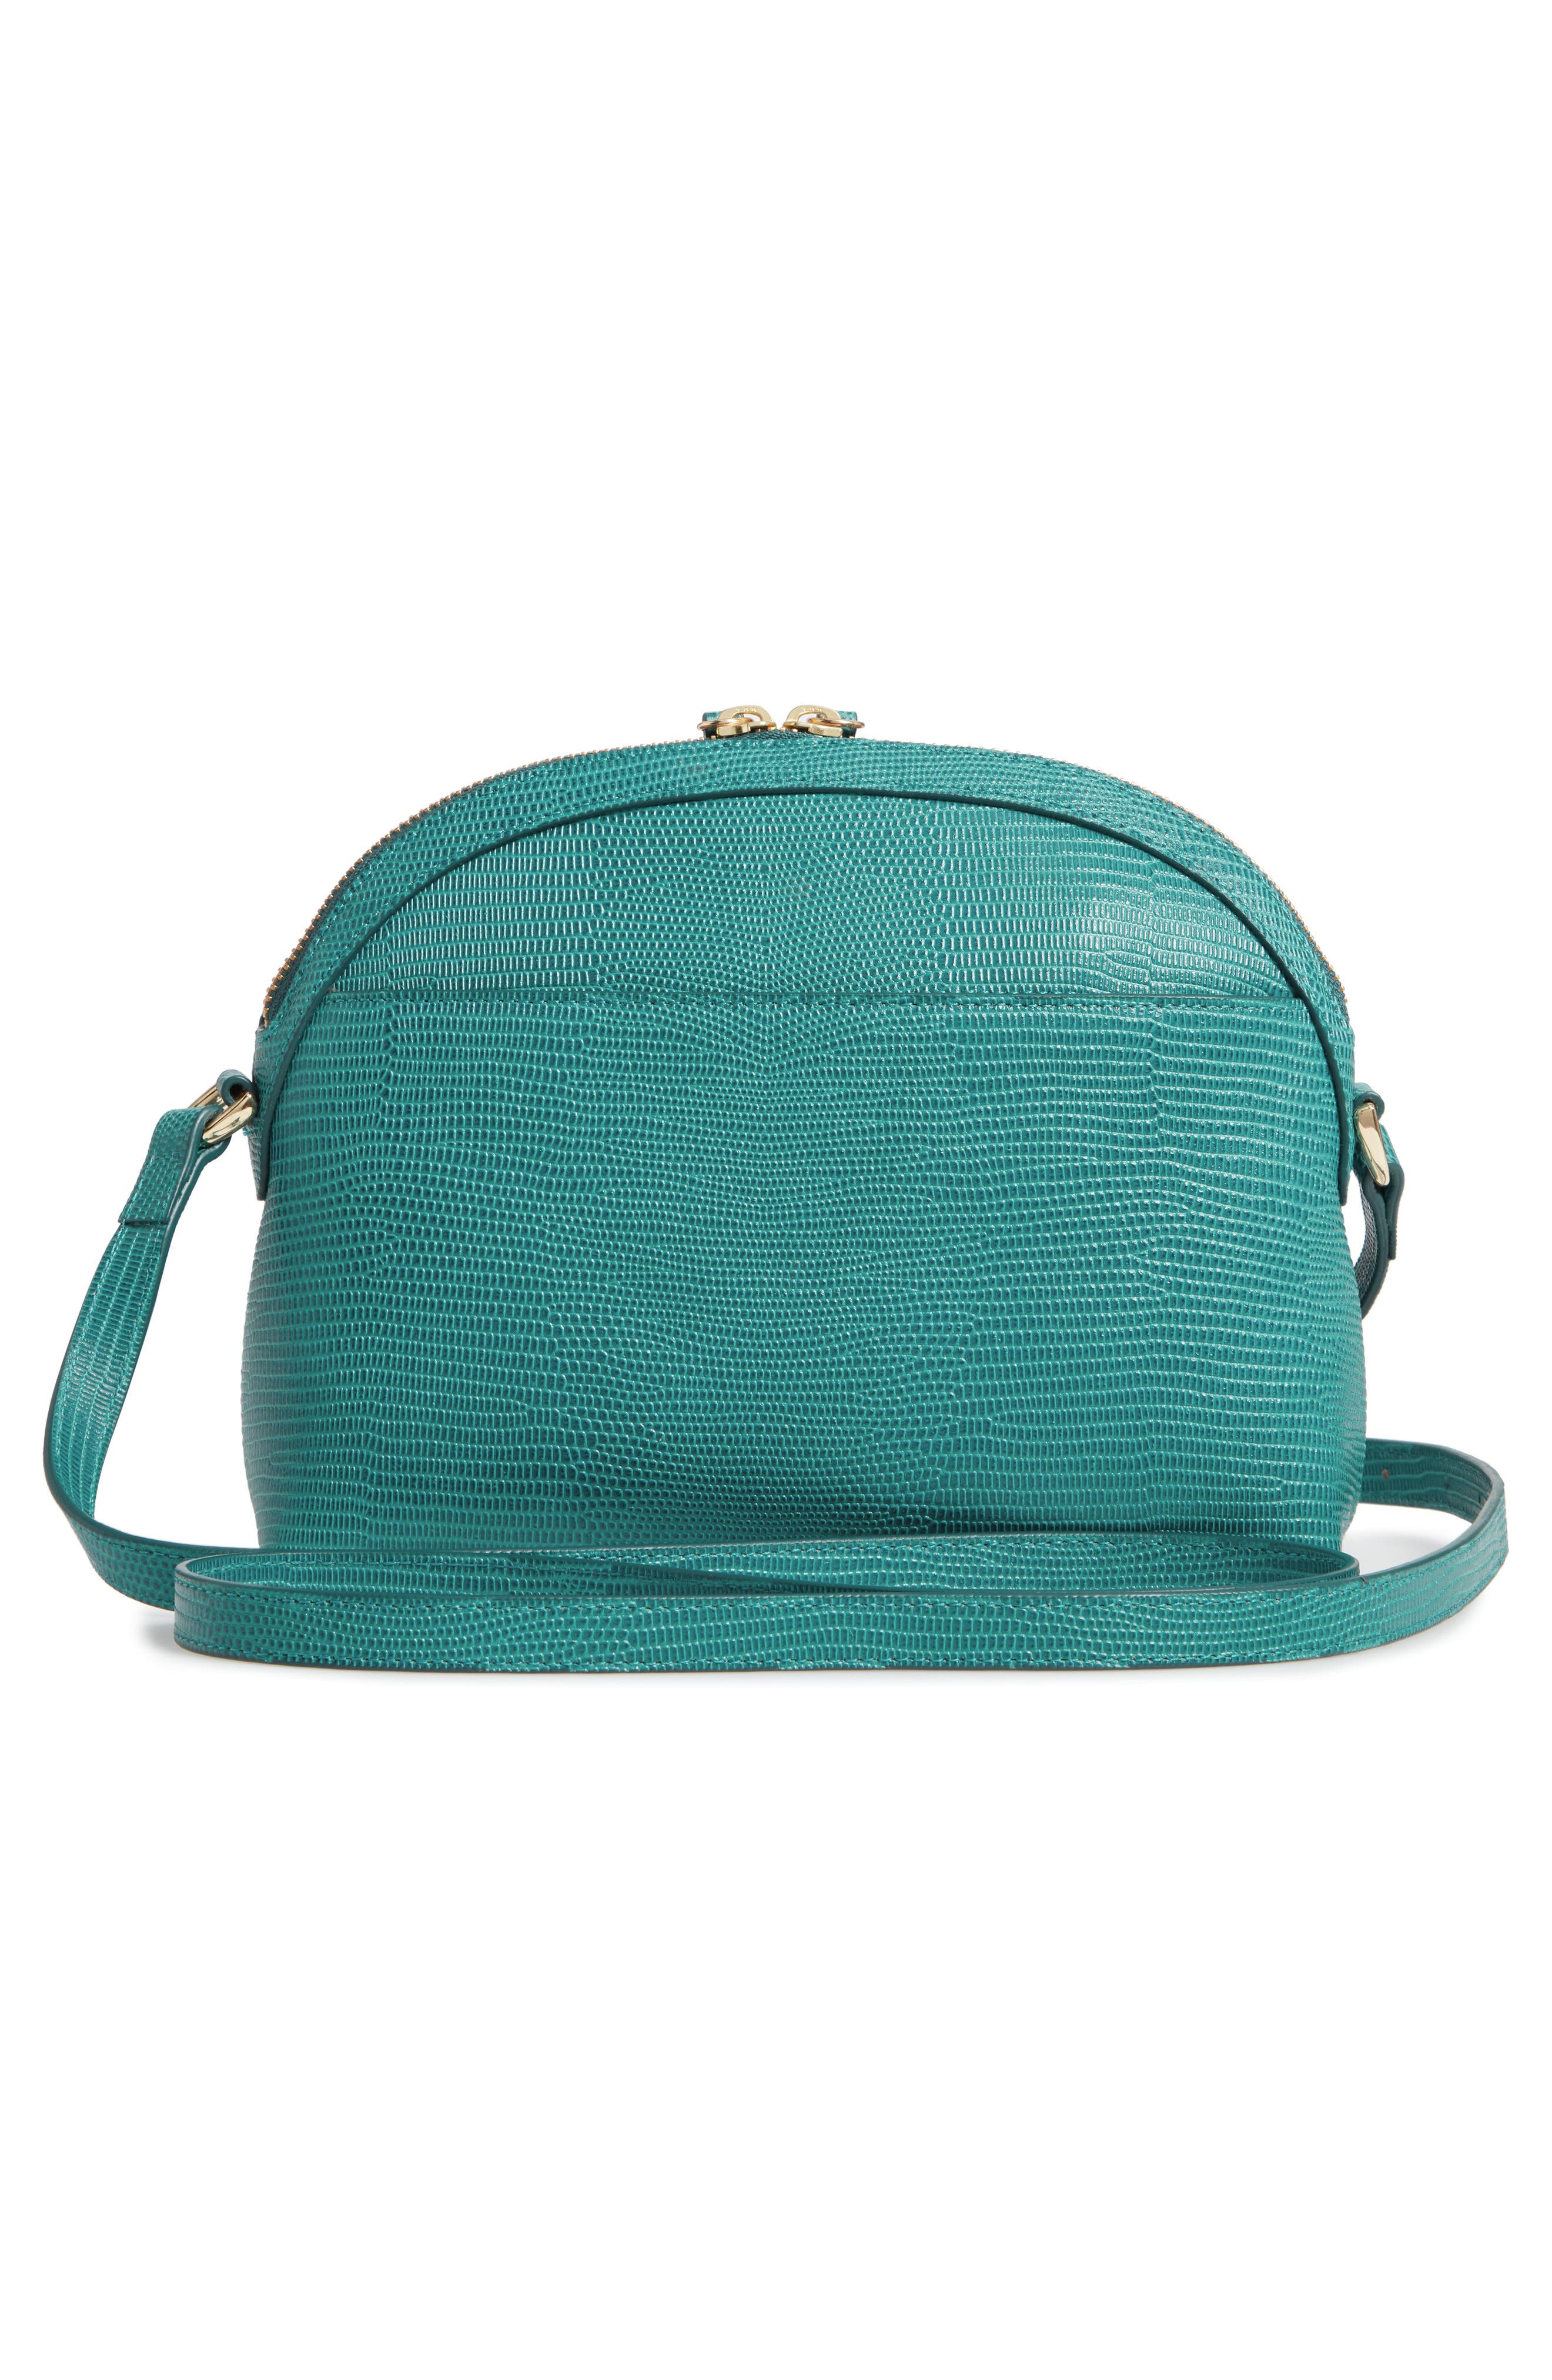 Isobel Half Moon Leather Crossbody Bag,                             Alternate thumbnail 3, color,                             TEAL HARBOR